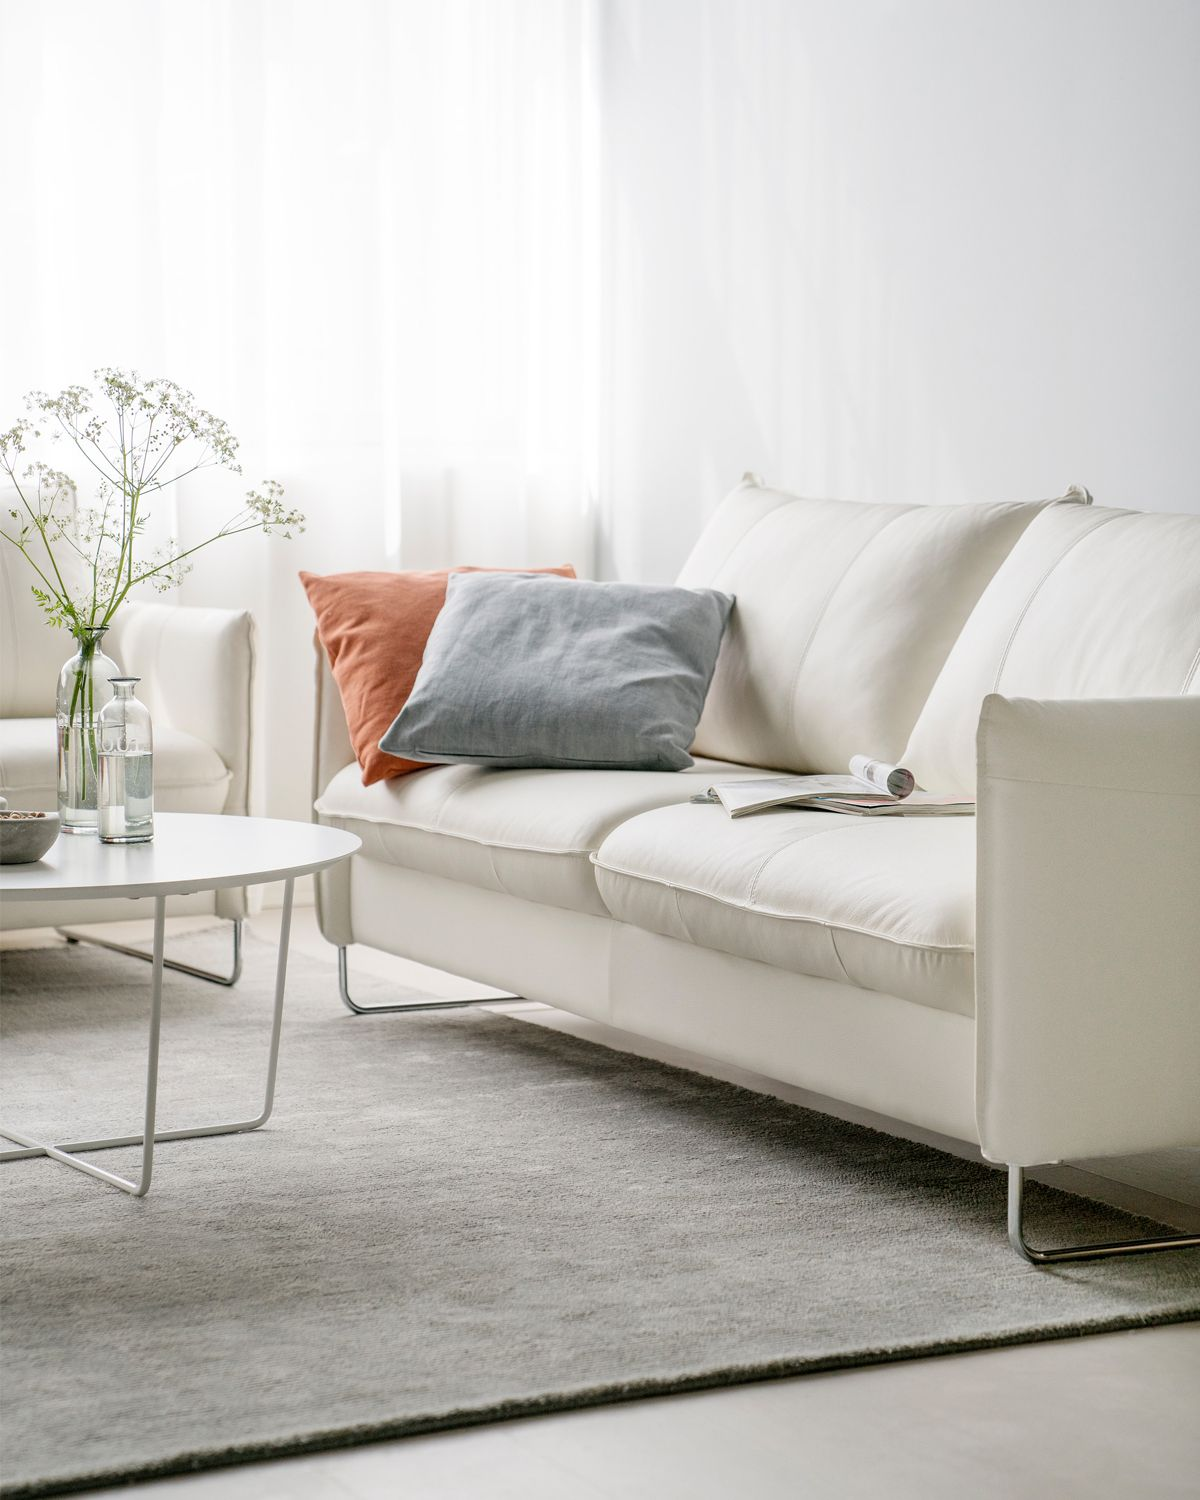 Furniture company Isku improves efficiency in Vantaa and wins over 1.0 million of savings